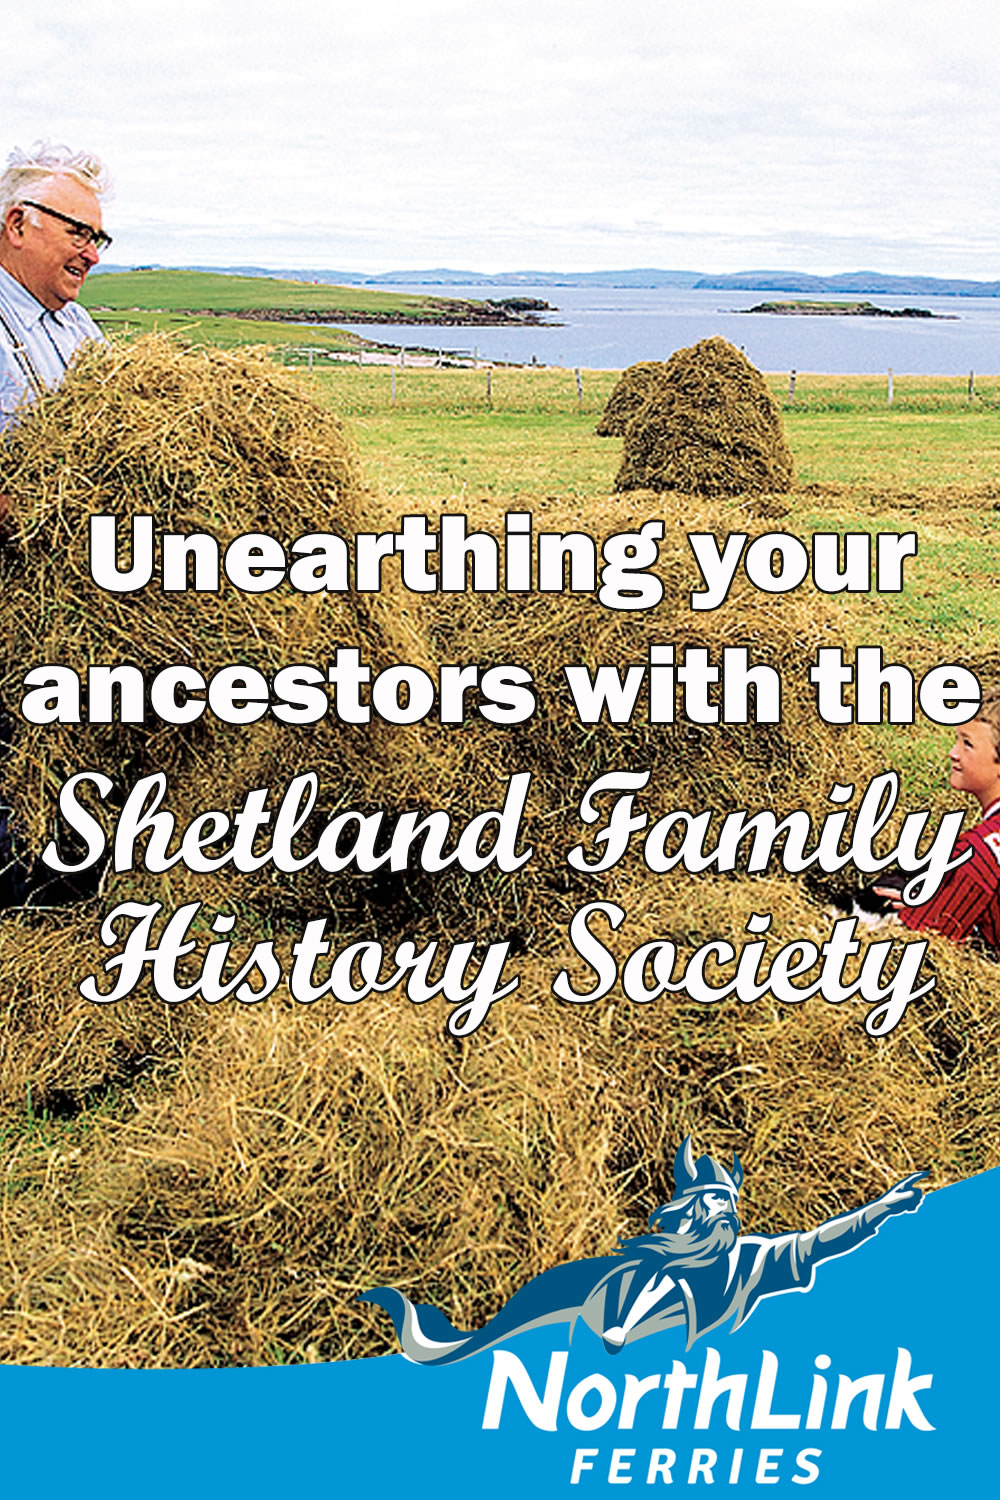 Unearthing your ancestors with the Shetland Family History Society